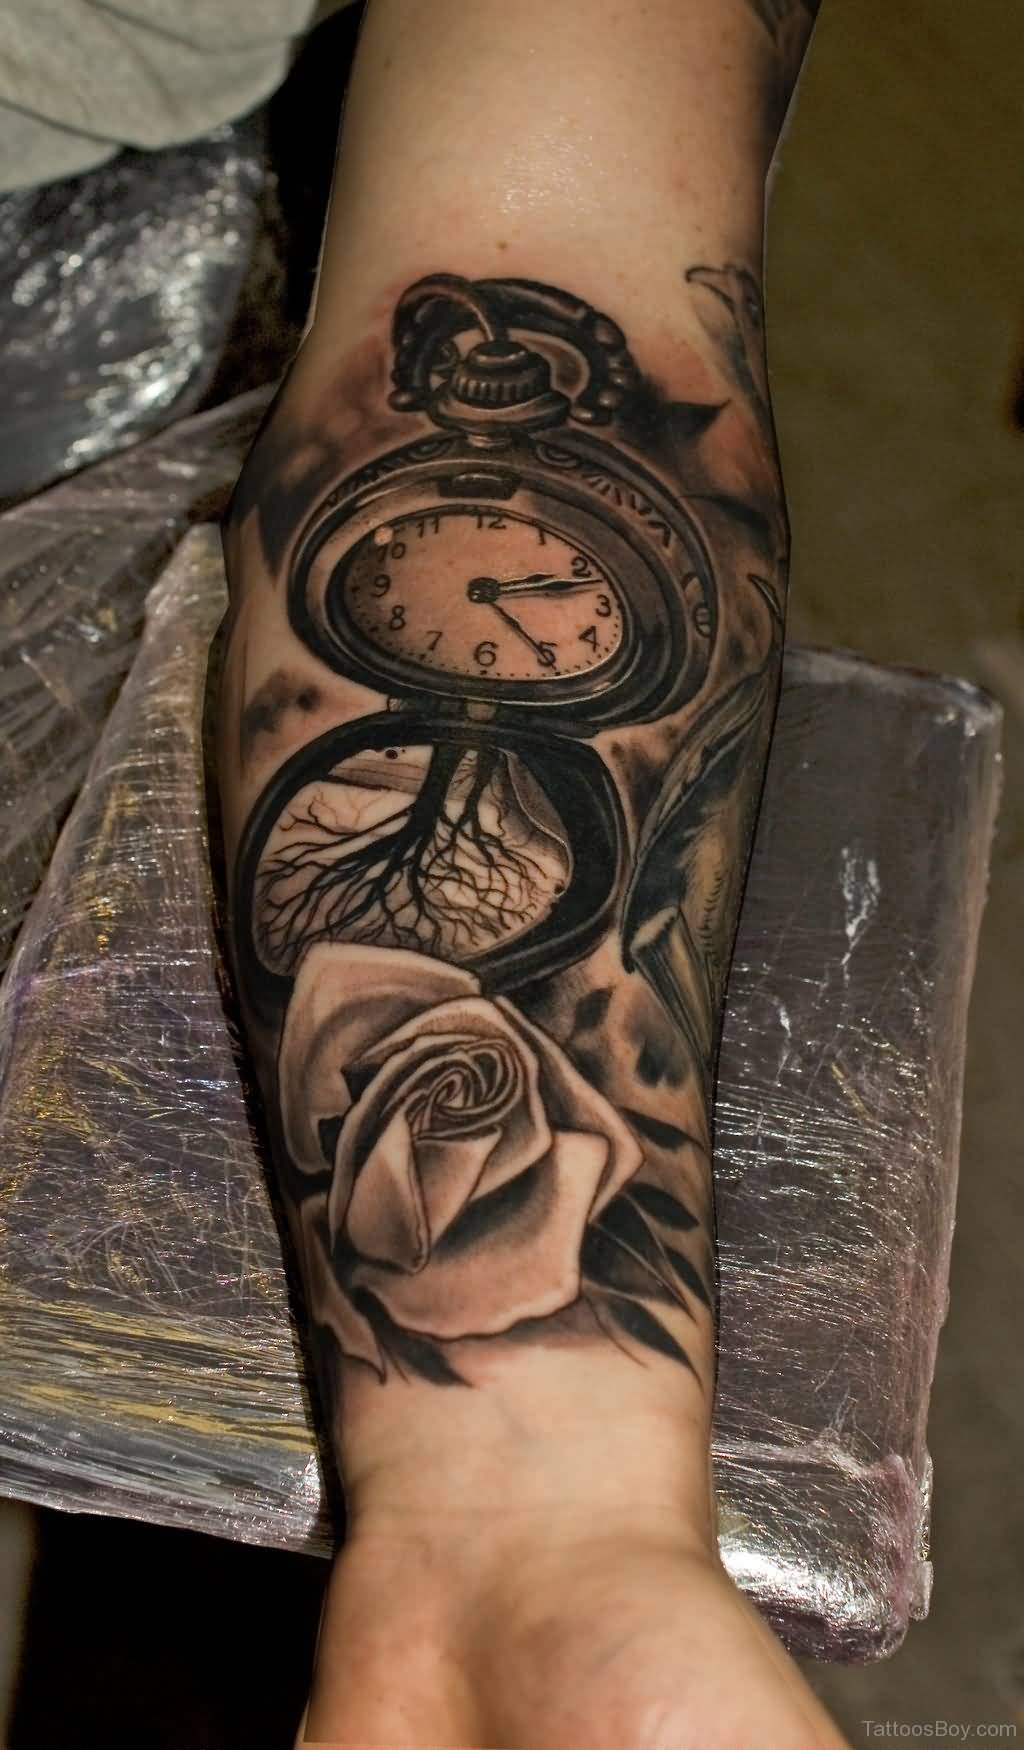 Clock forearm black rose sleeve tattoo - Clock Forearm Black Rose Sleeve Tattoo 14